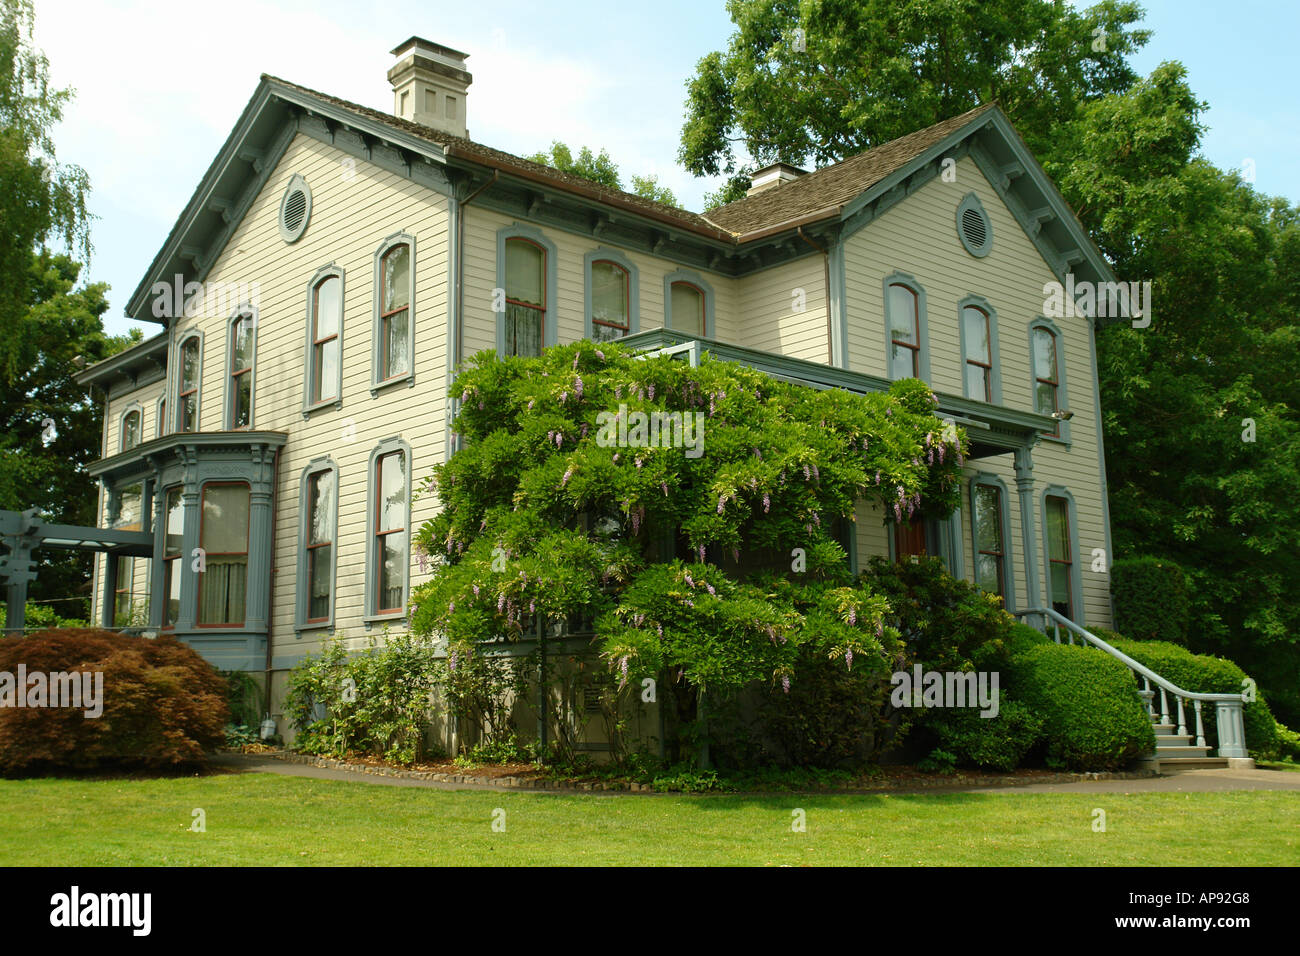 AJD52111, Salem, OR, Oregon, Bush's Pasture Park, Bush House Museum, Italianate 1877 - Stock Image